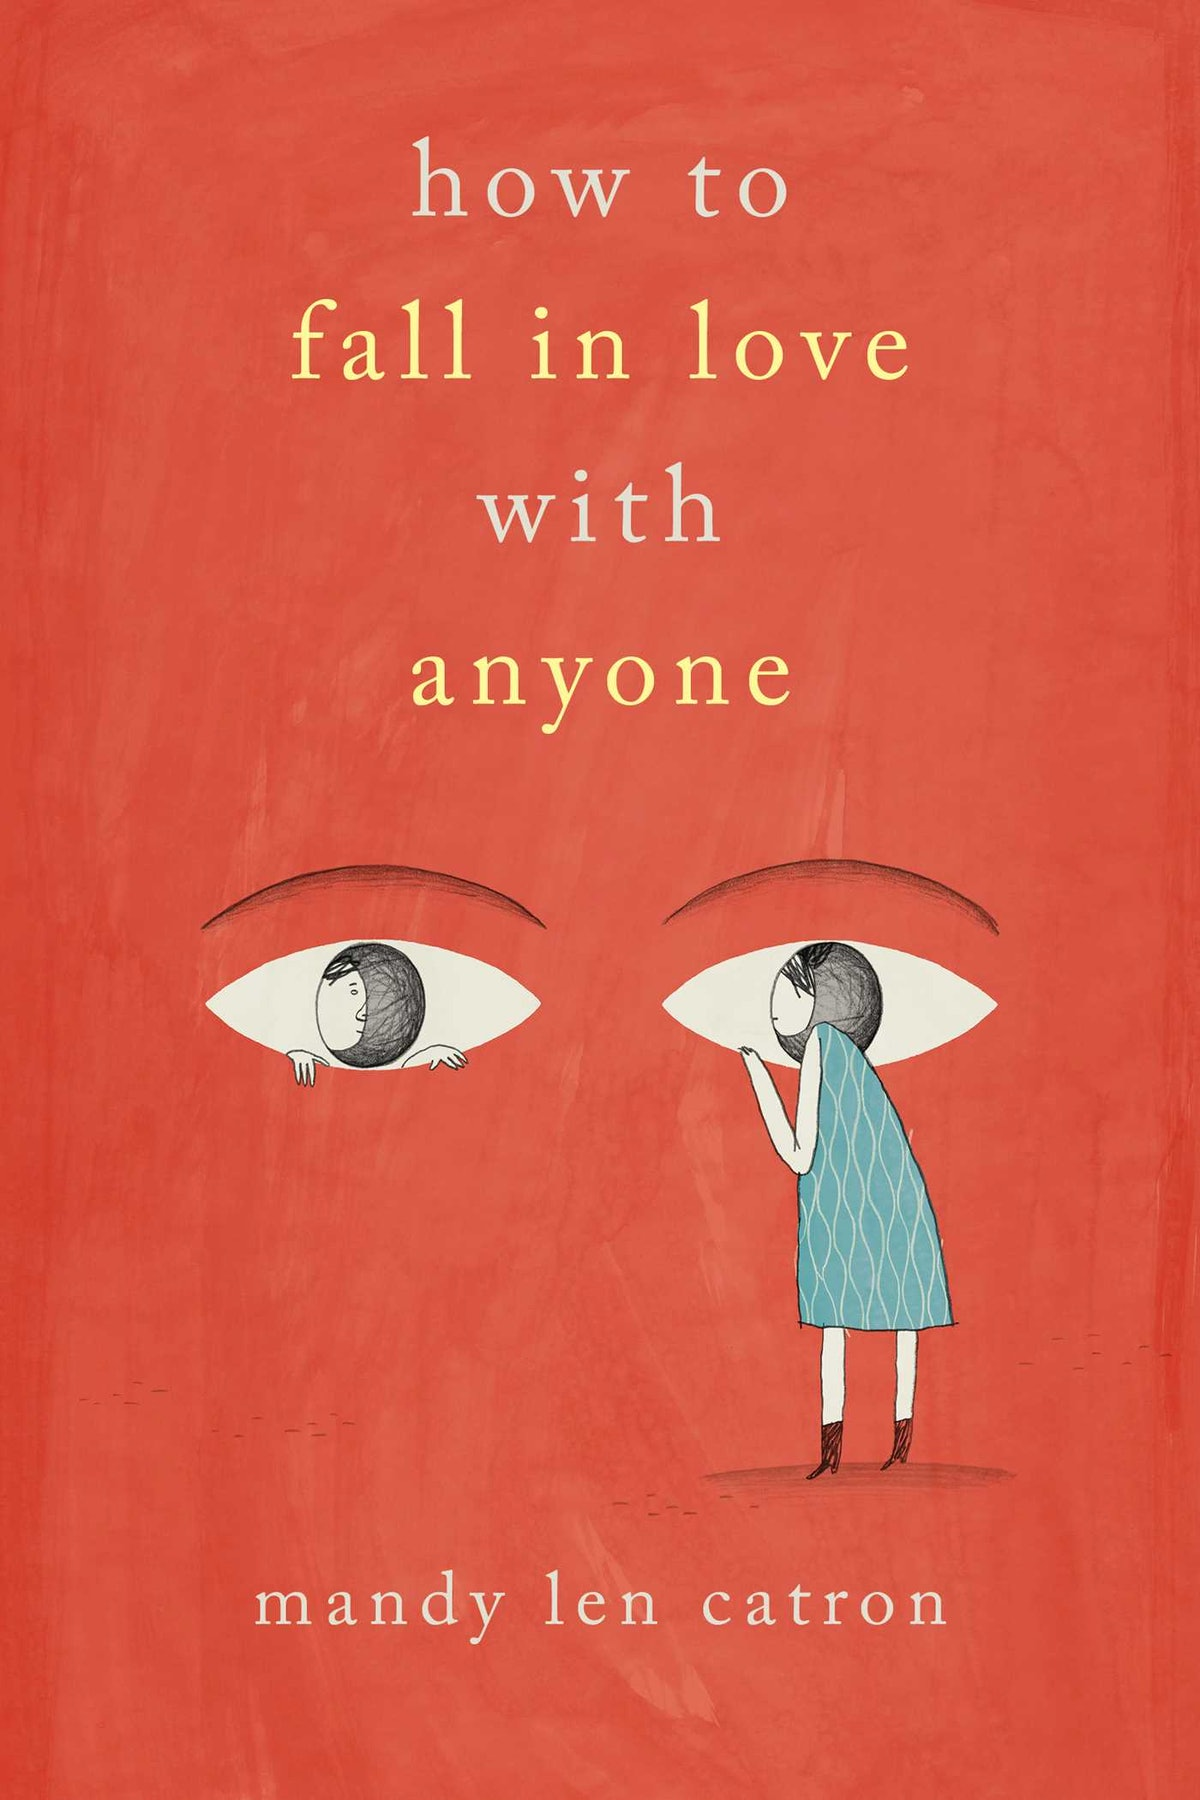 how-to-fall-in-love-with-anyone-9781501137440_hr.jpg